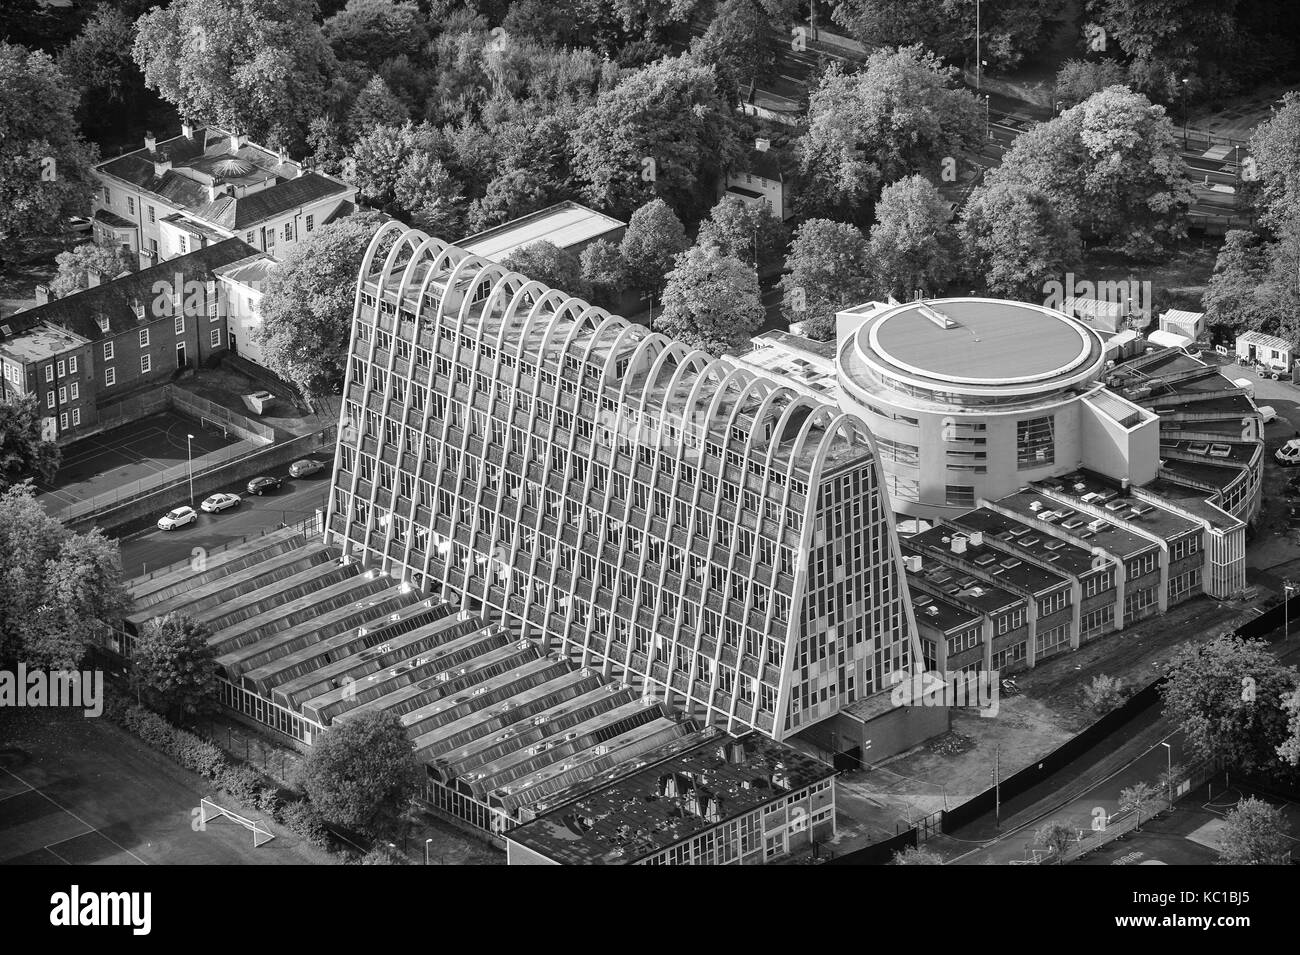 Aerial photo of Toastrack Building Manchester - Stock Image